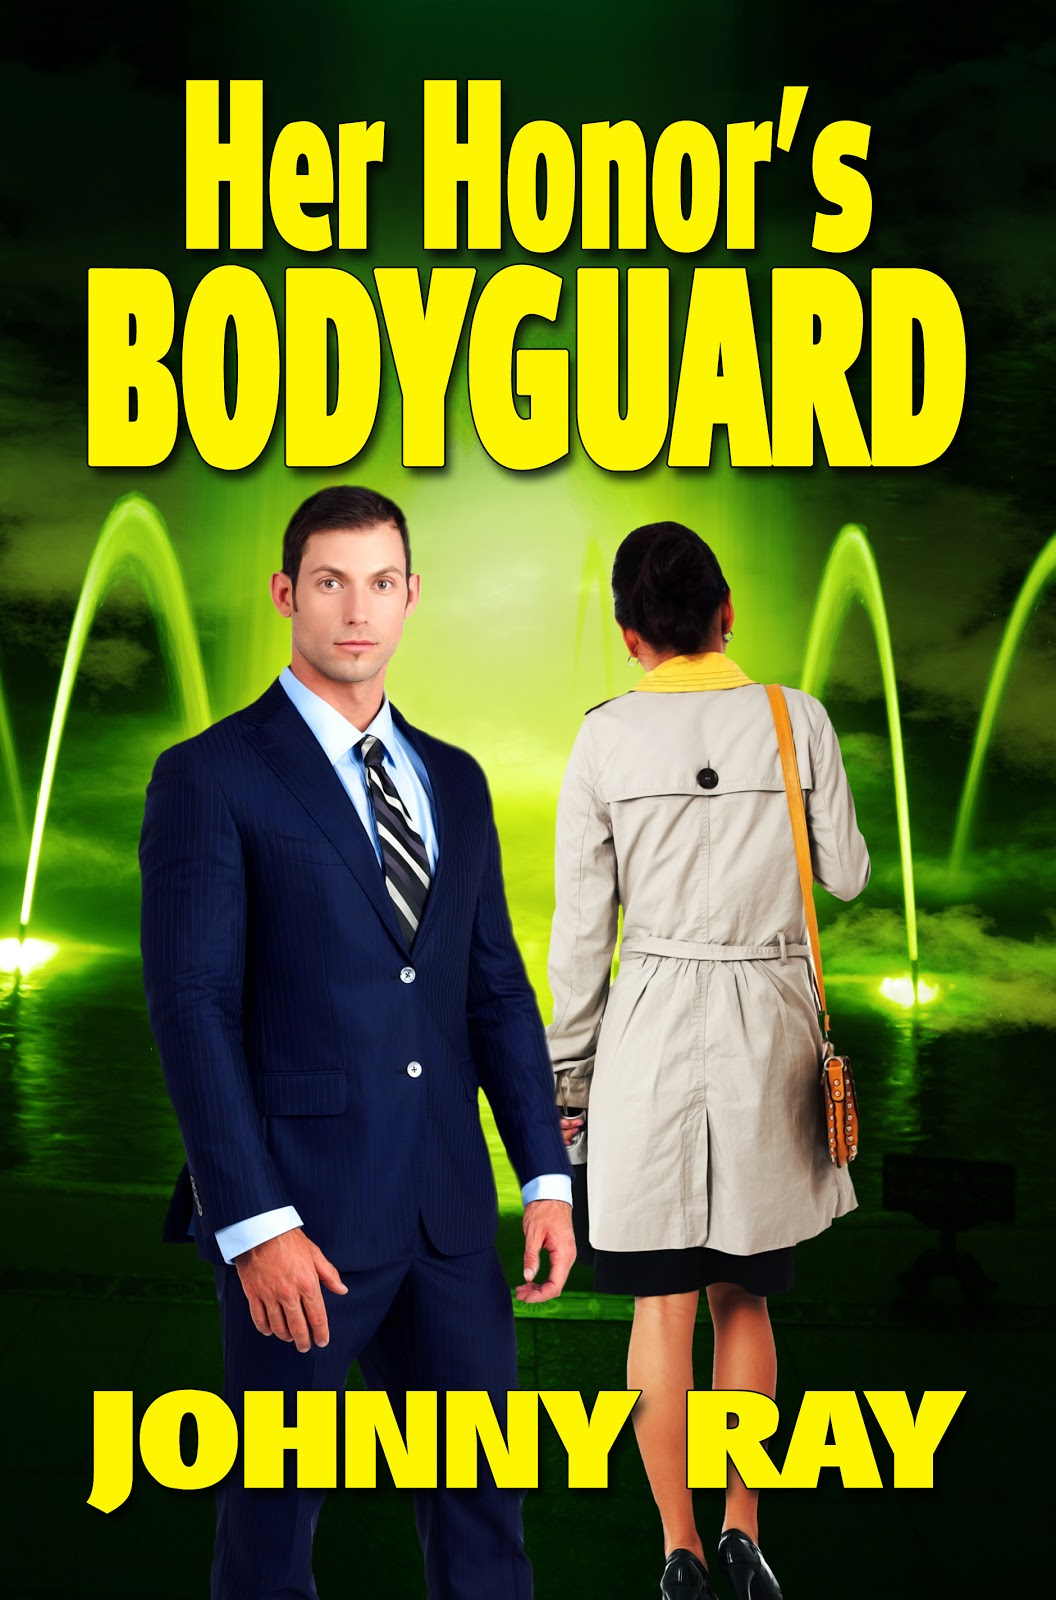 www.amazon.com/HER-HONORS-BODYGUARD-Johnny-Ray-ebook/dp/B008550EV2